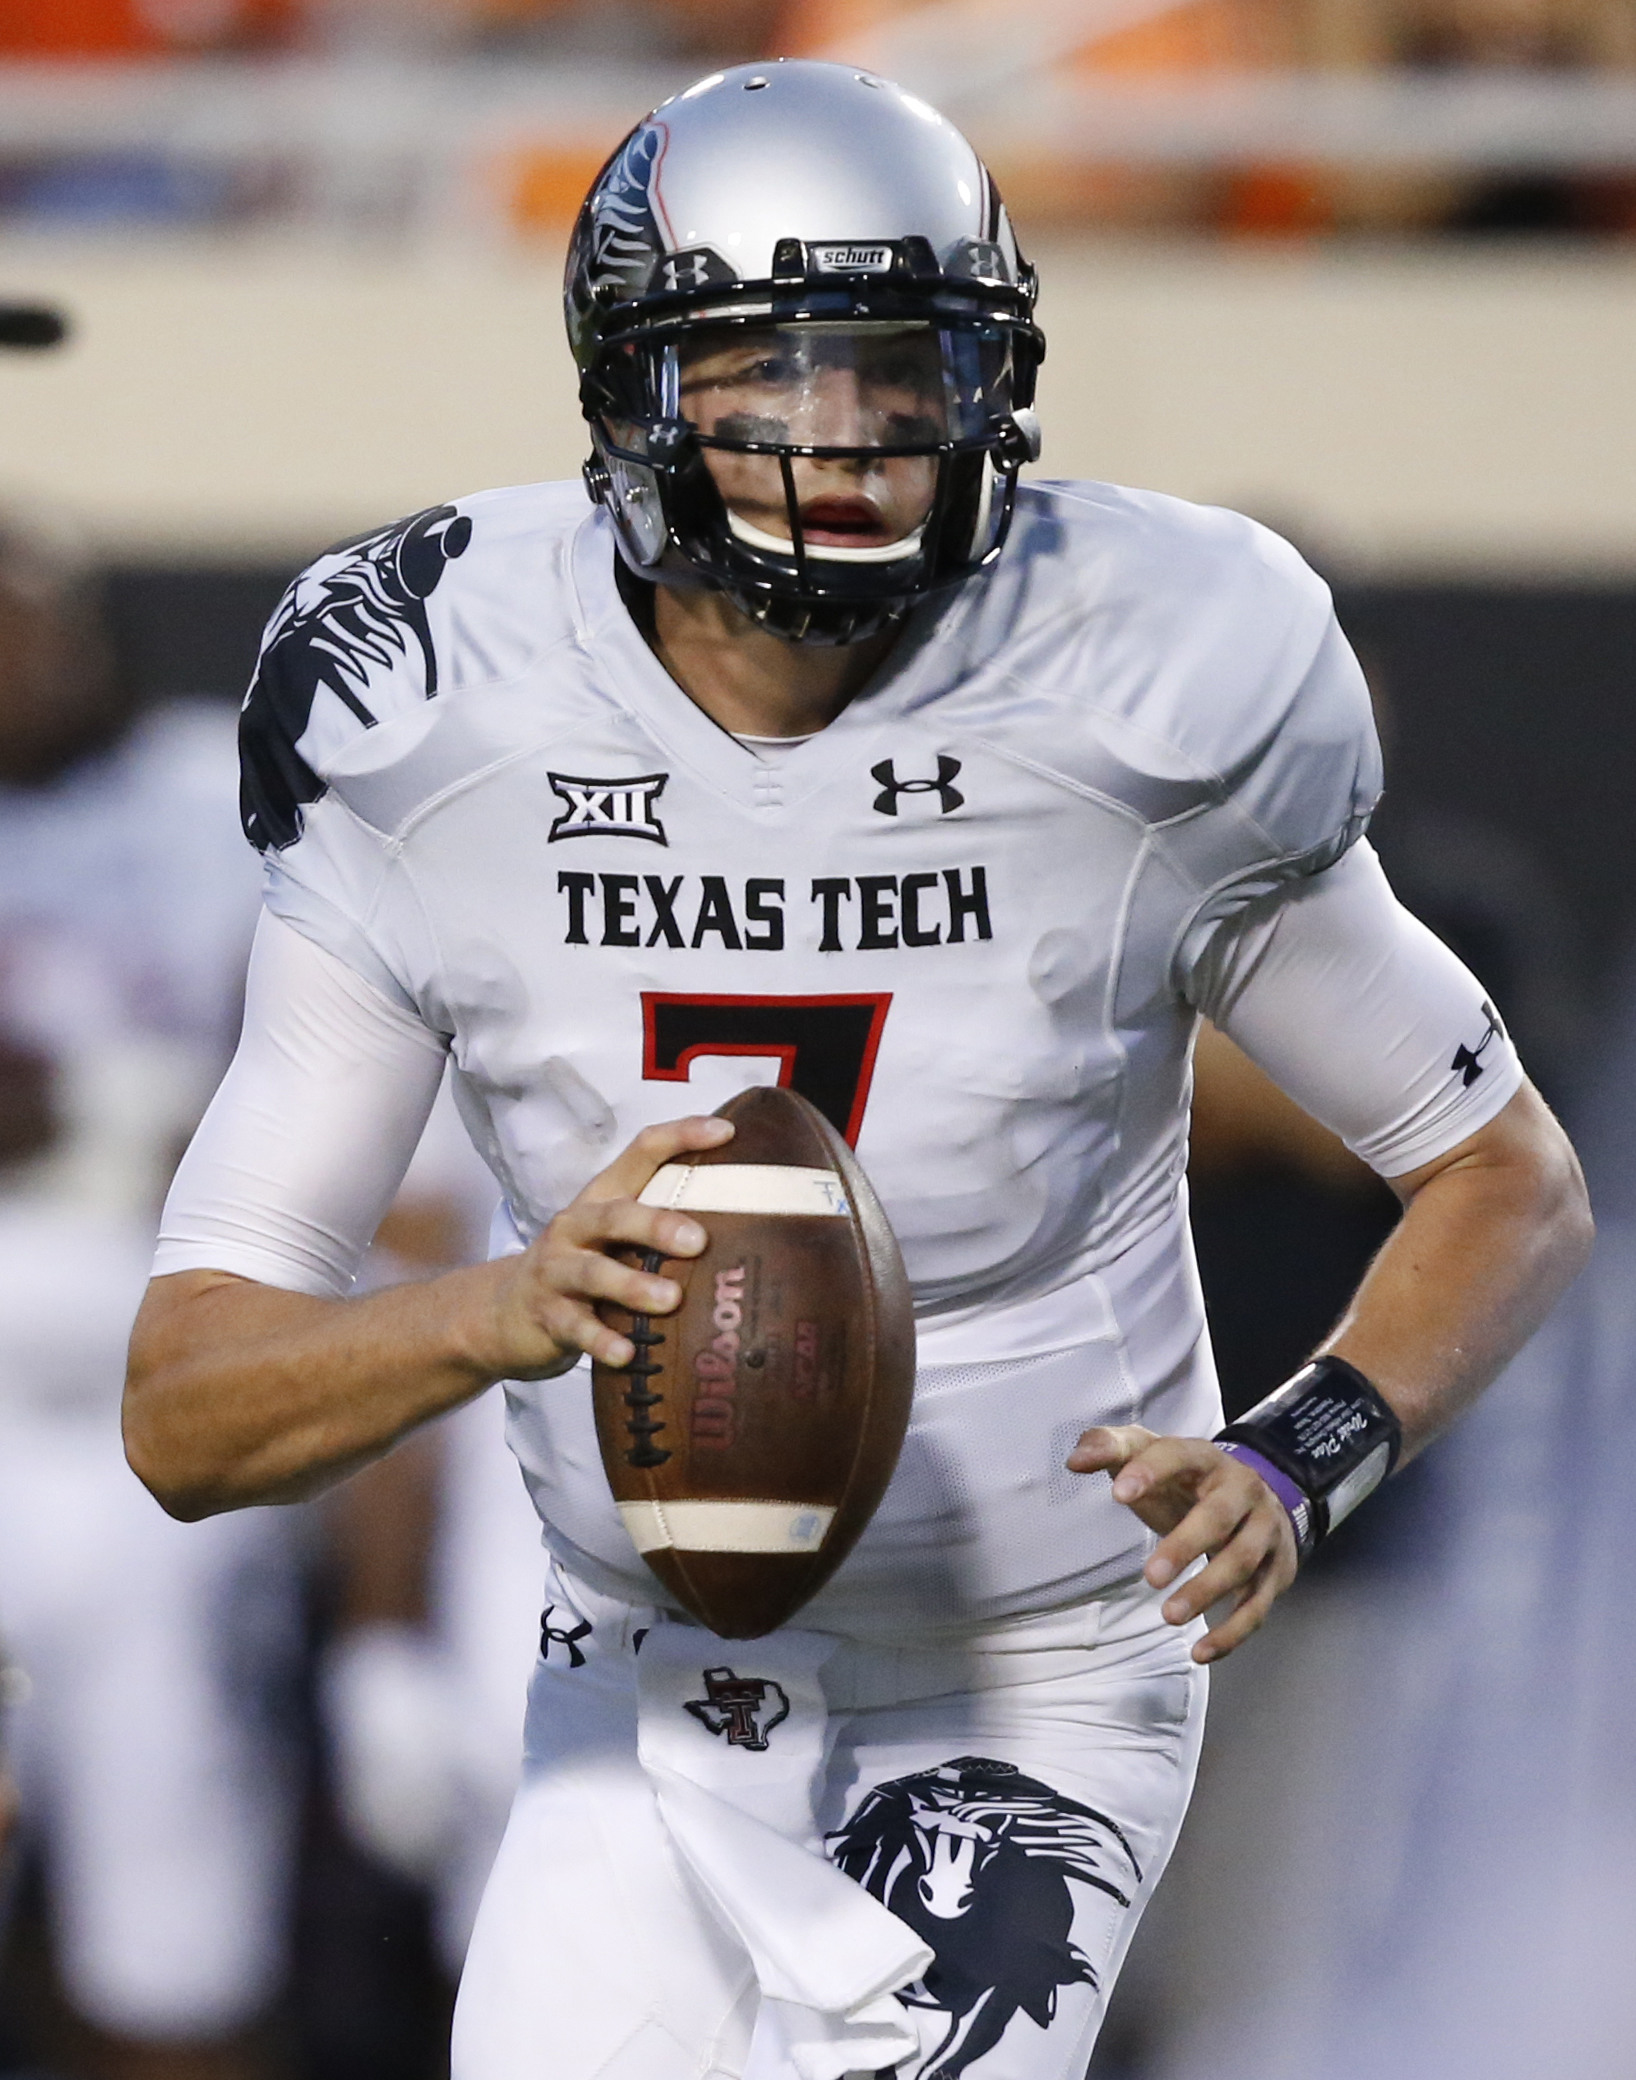 Texas Tech quarterback Davis Webb (7) is pictured during an NCAA college football game between Texas Tech and Oklahoma State in Stillwater, Okla., Thursday, Sept. 25, 2014. (AP Photo/Sue Ogrocki)